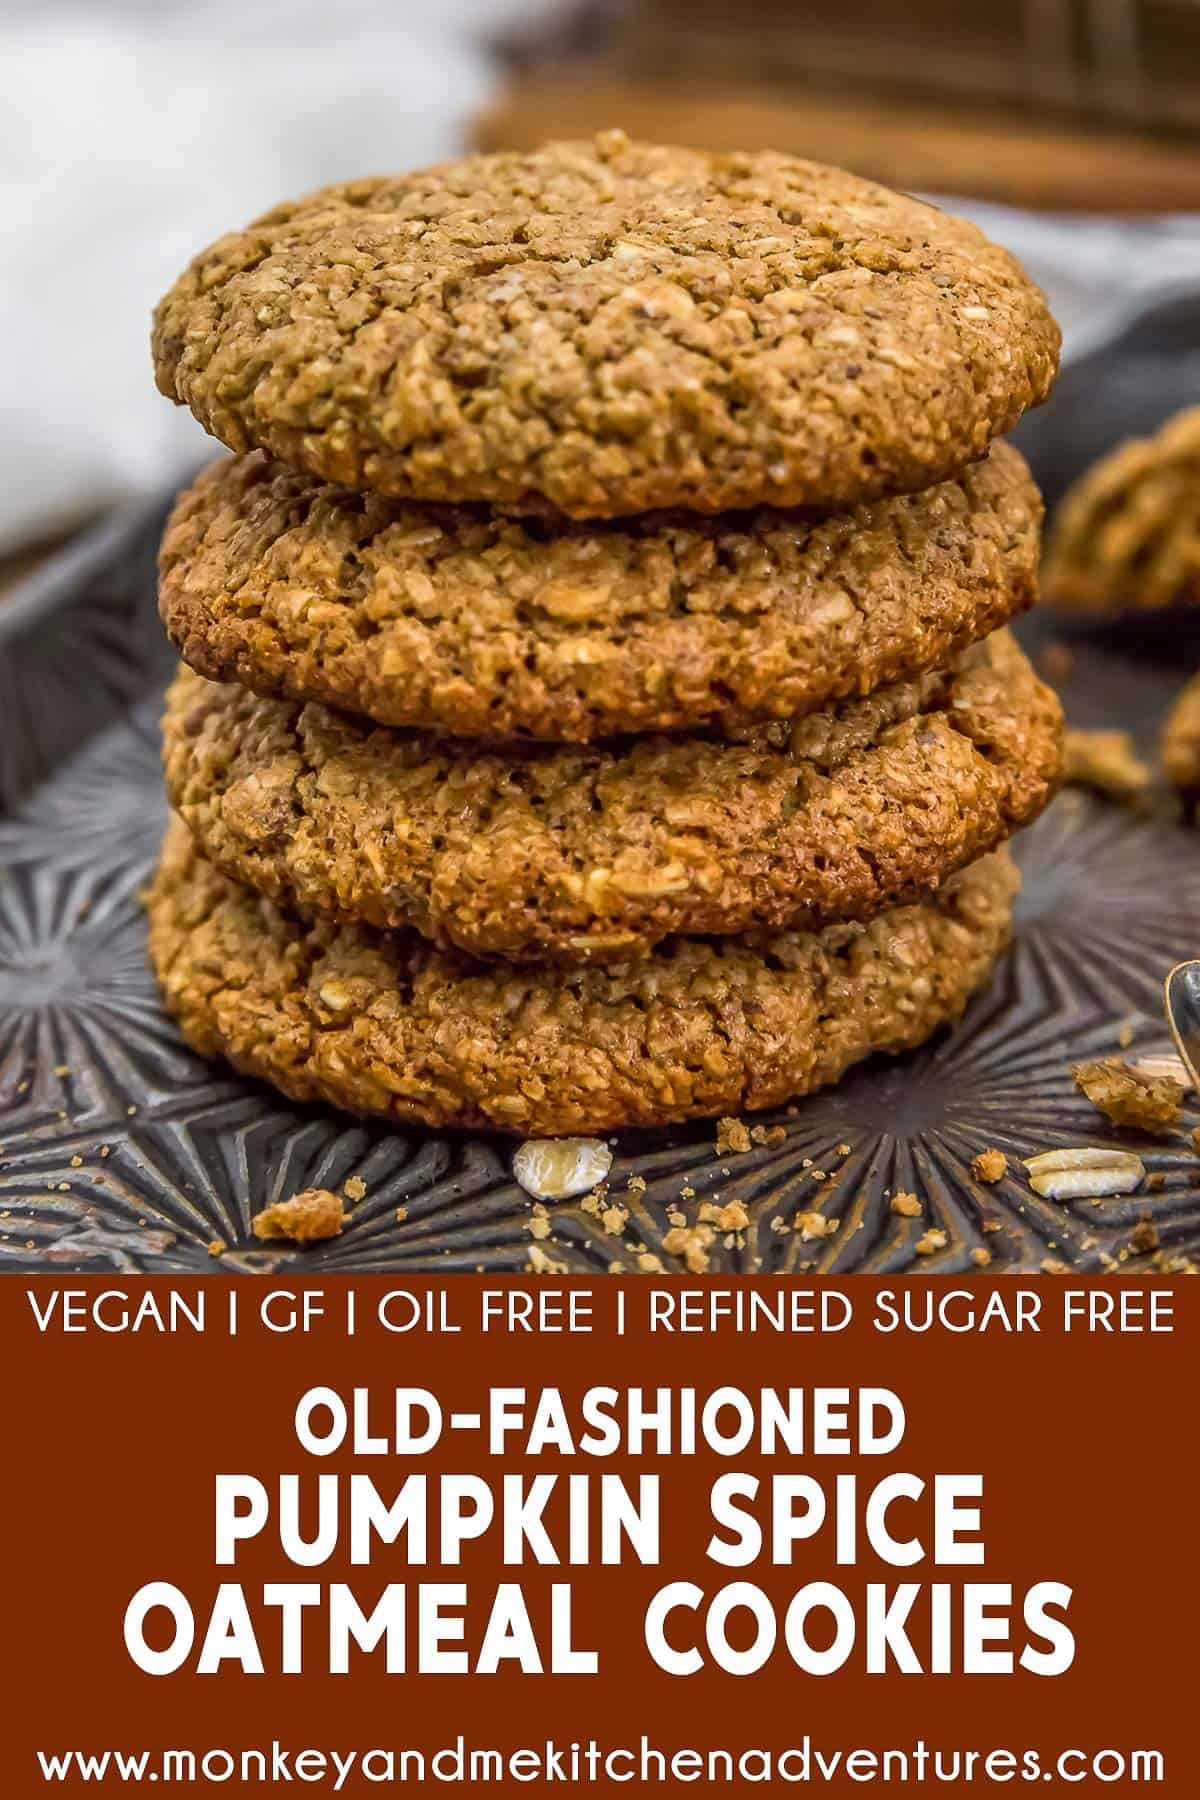 Old-Fashioned Pumpkin Spice Oatmeal Cookies with text description